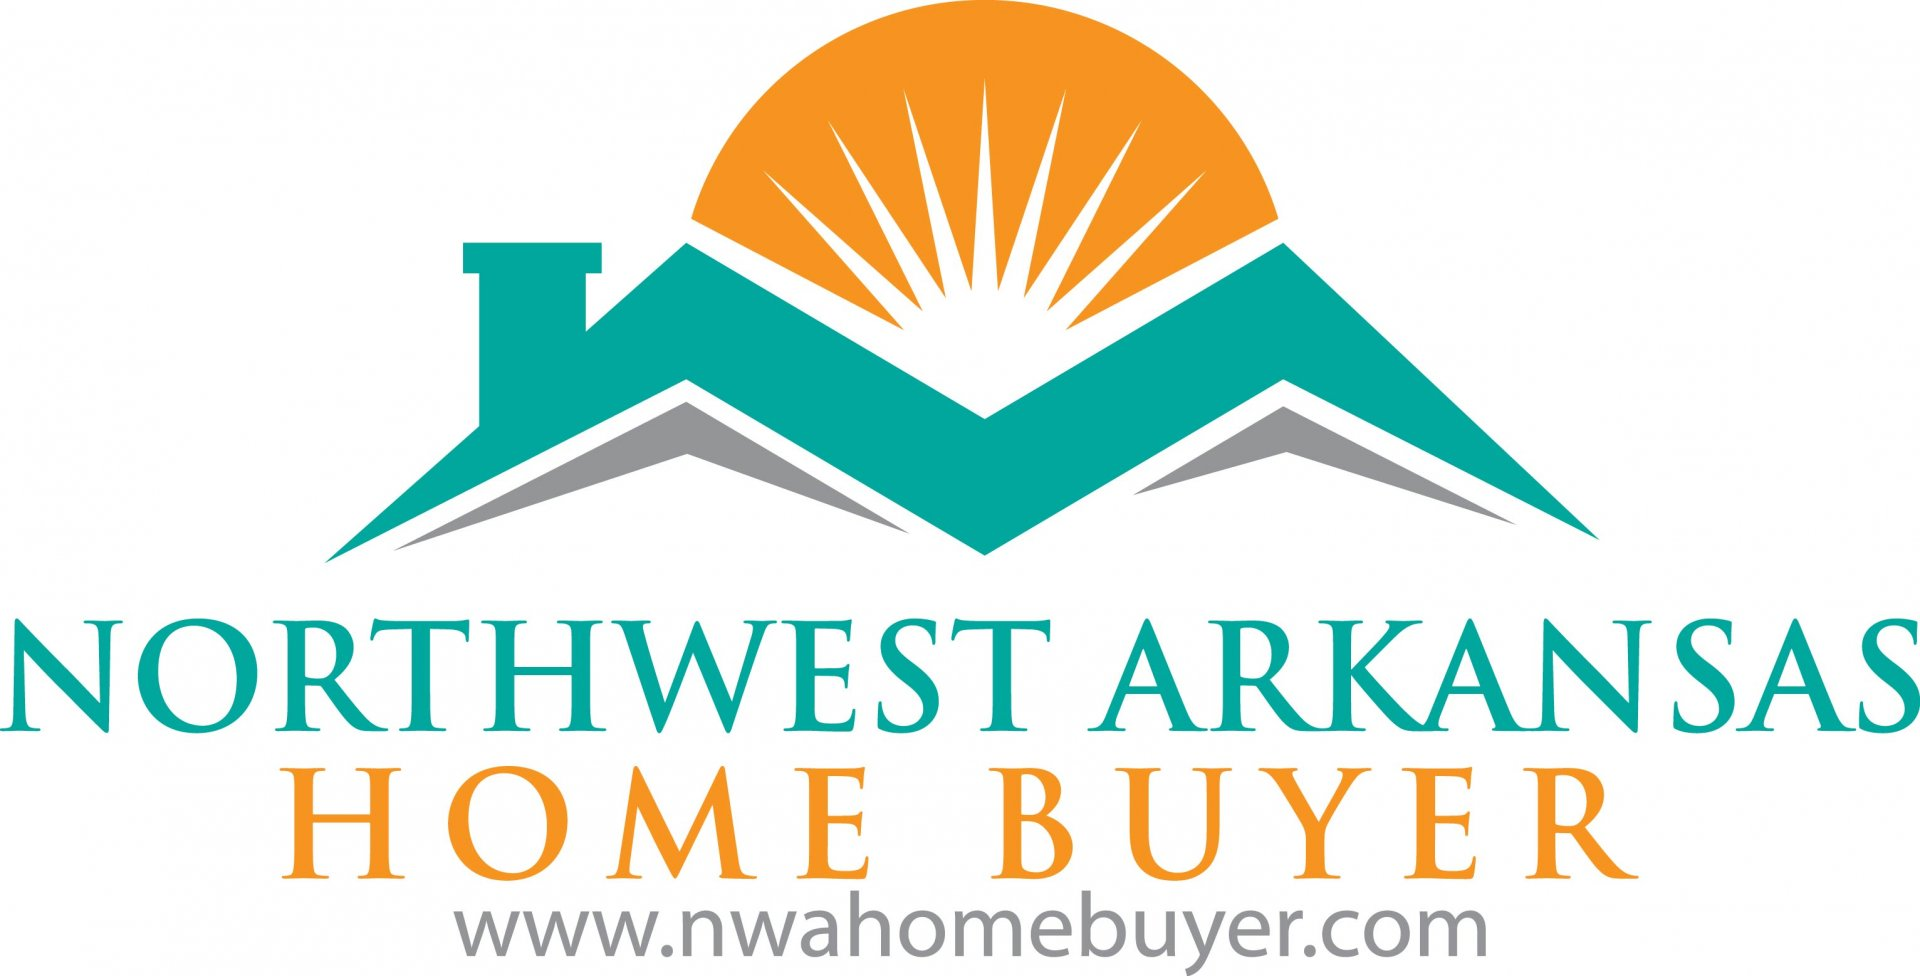 NWA Home Buyer logo